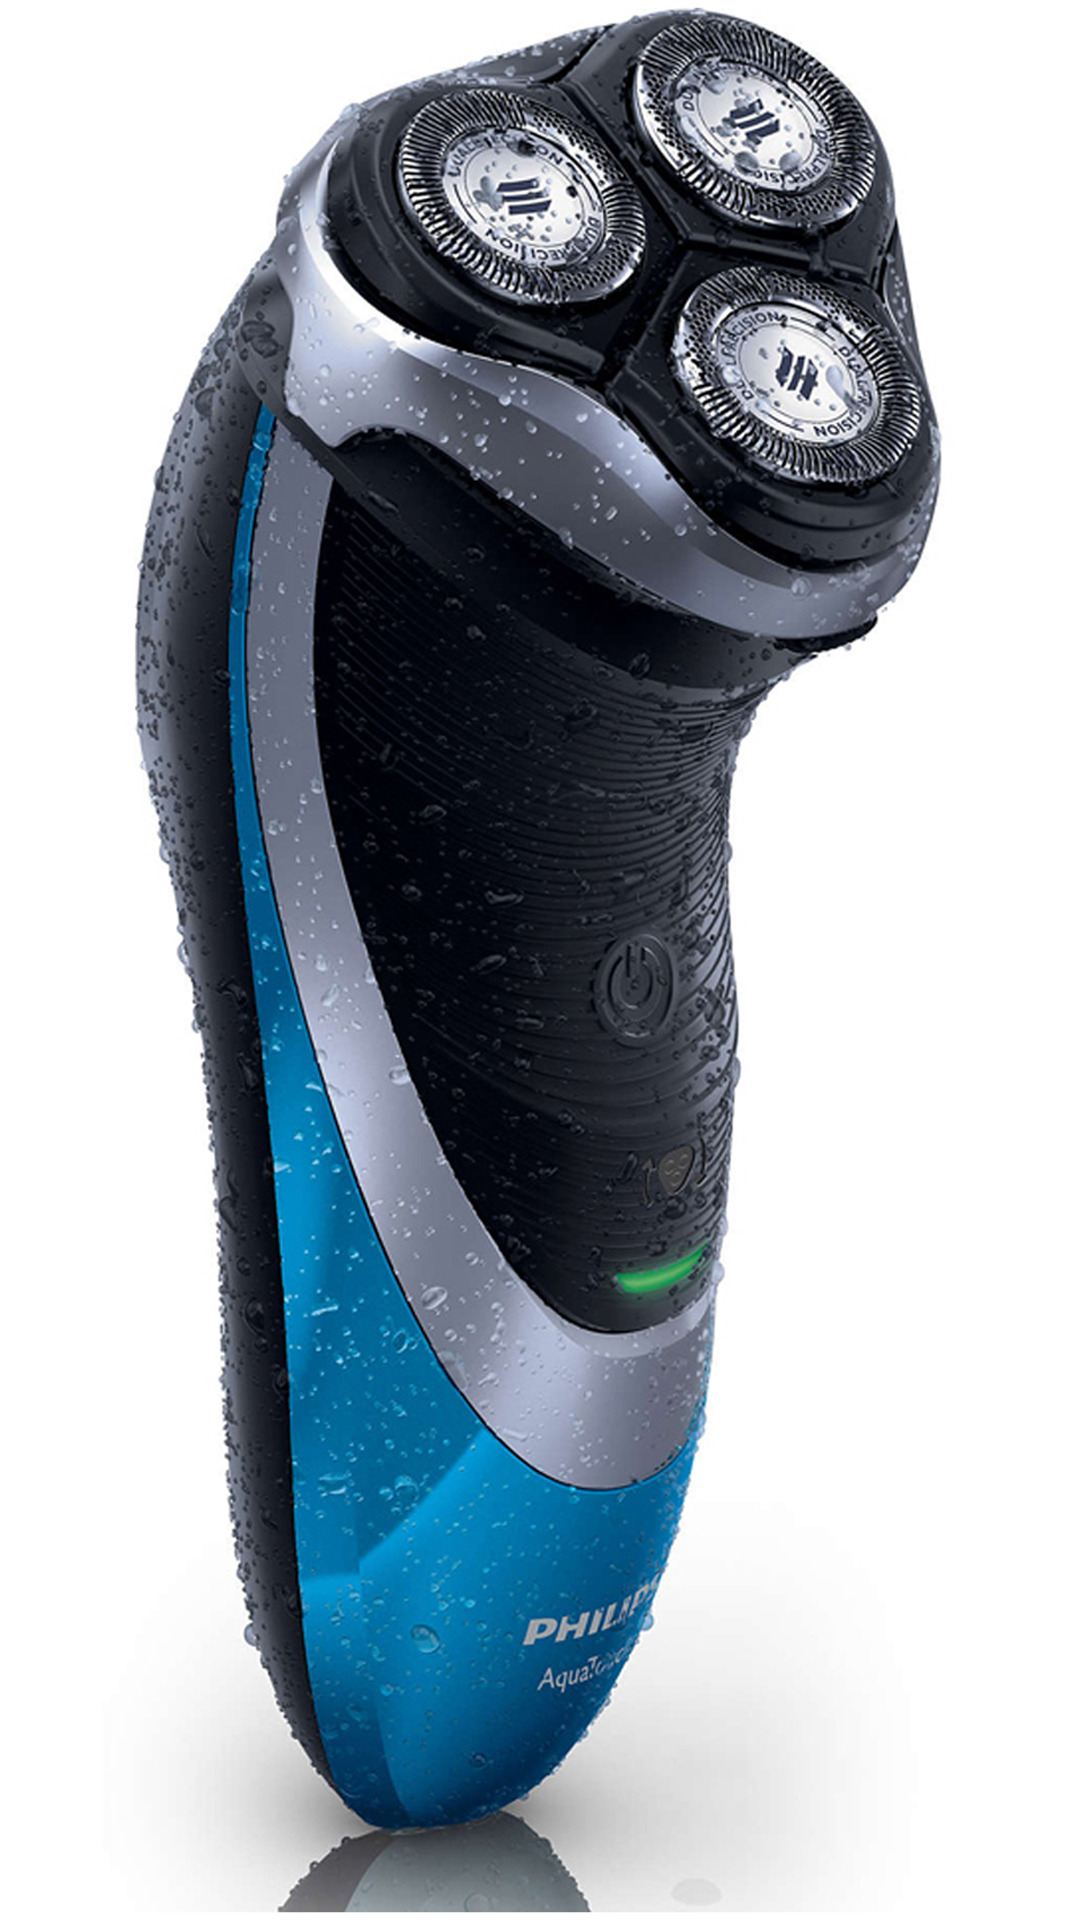 Philips AT890/16 Shaver For Men (Blue & Black)